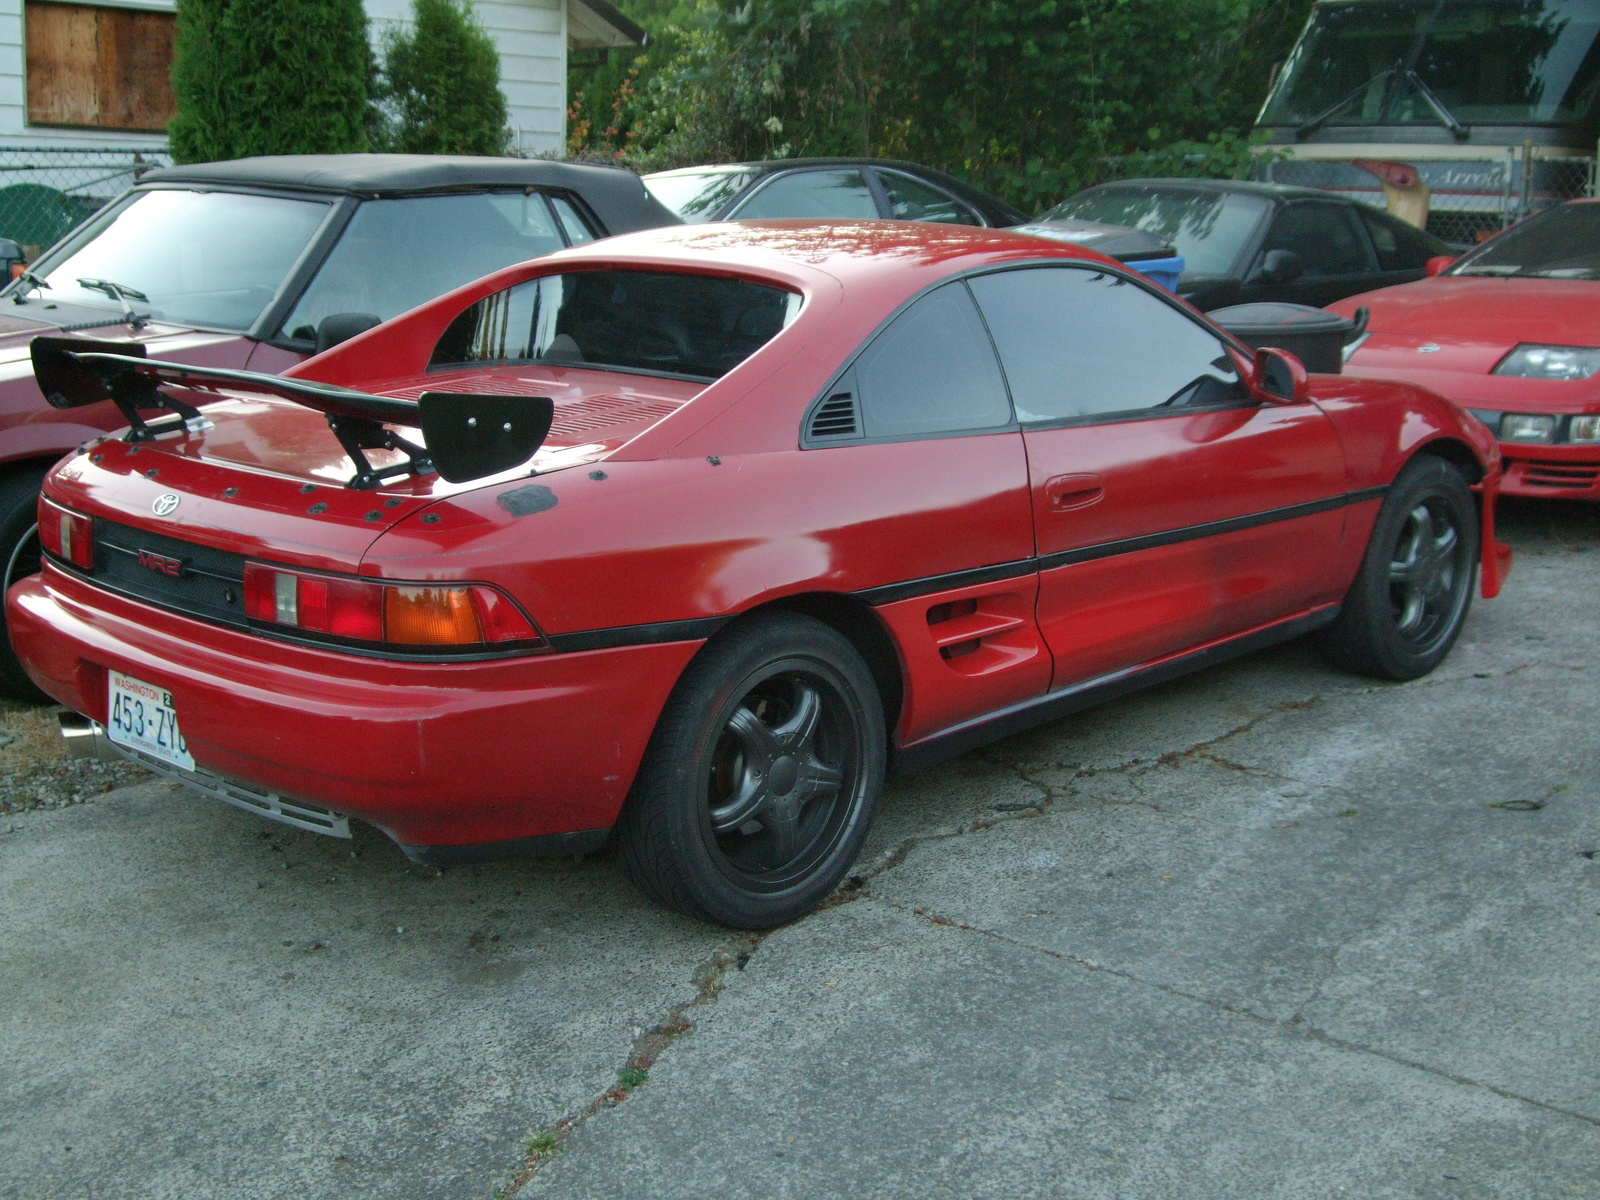 1991 Toyota MR2 2 Dr STD Coupe picture, exterior